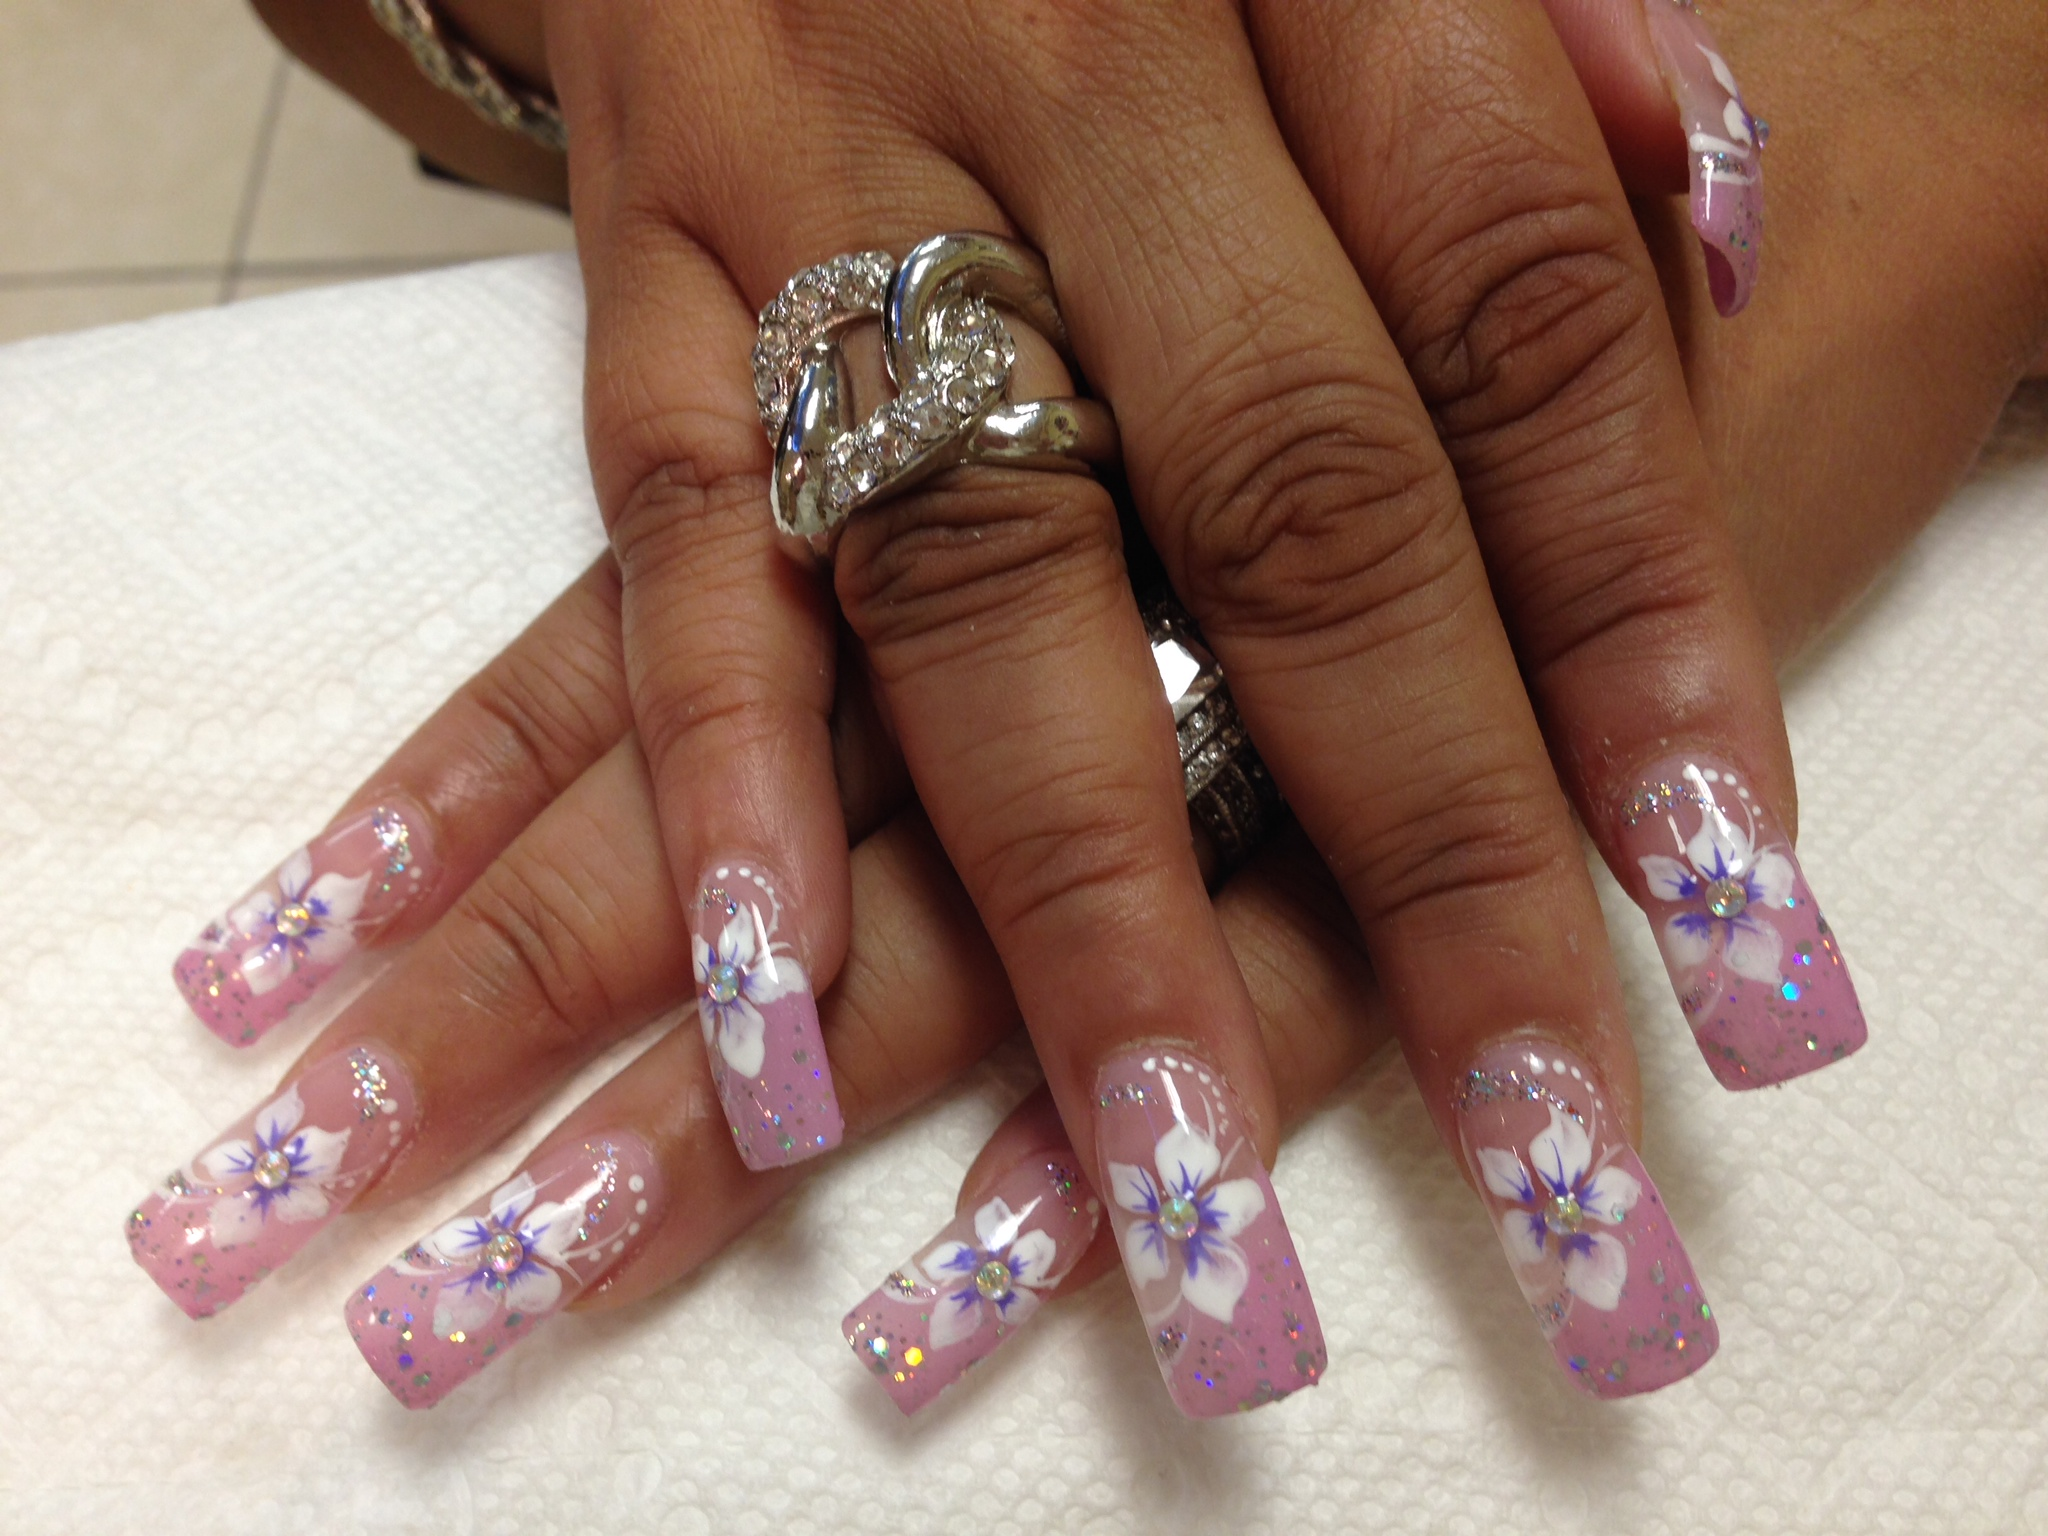 Dainty Stargazer, nail art designs by Top Nails, Clarksville TN ...